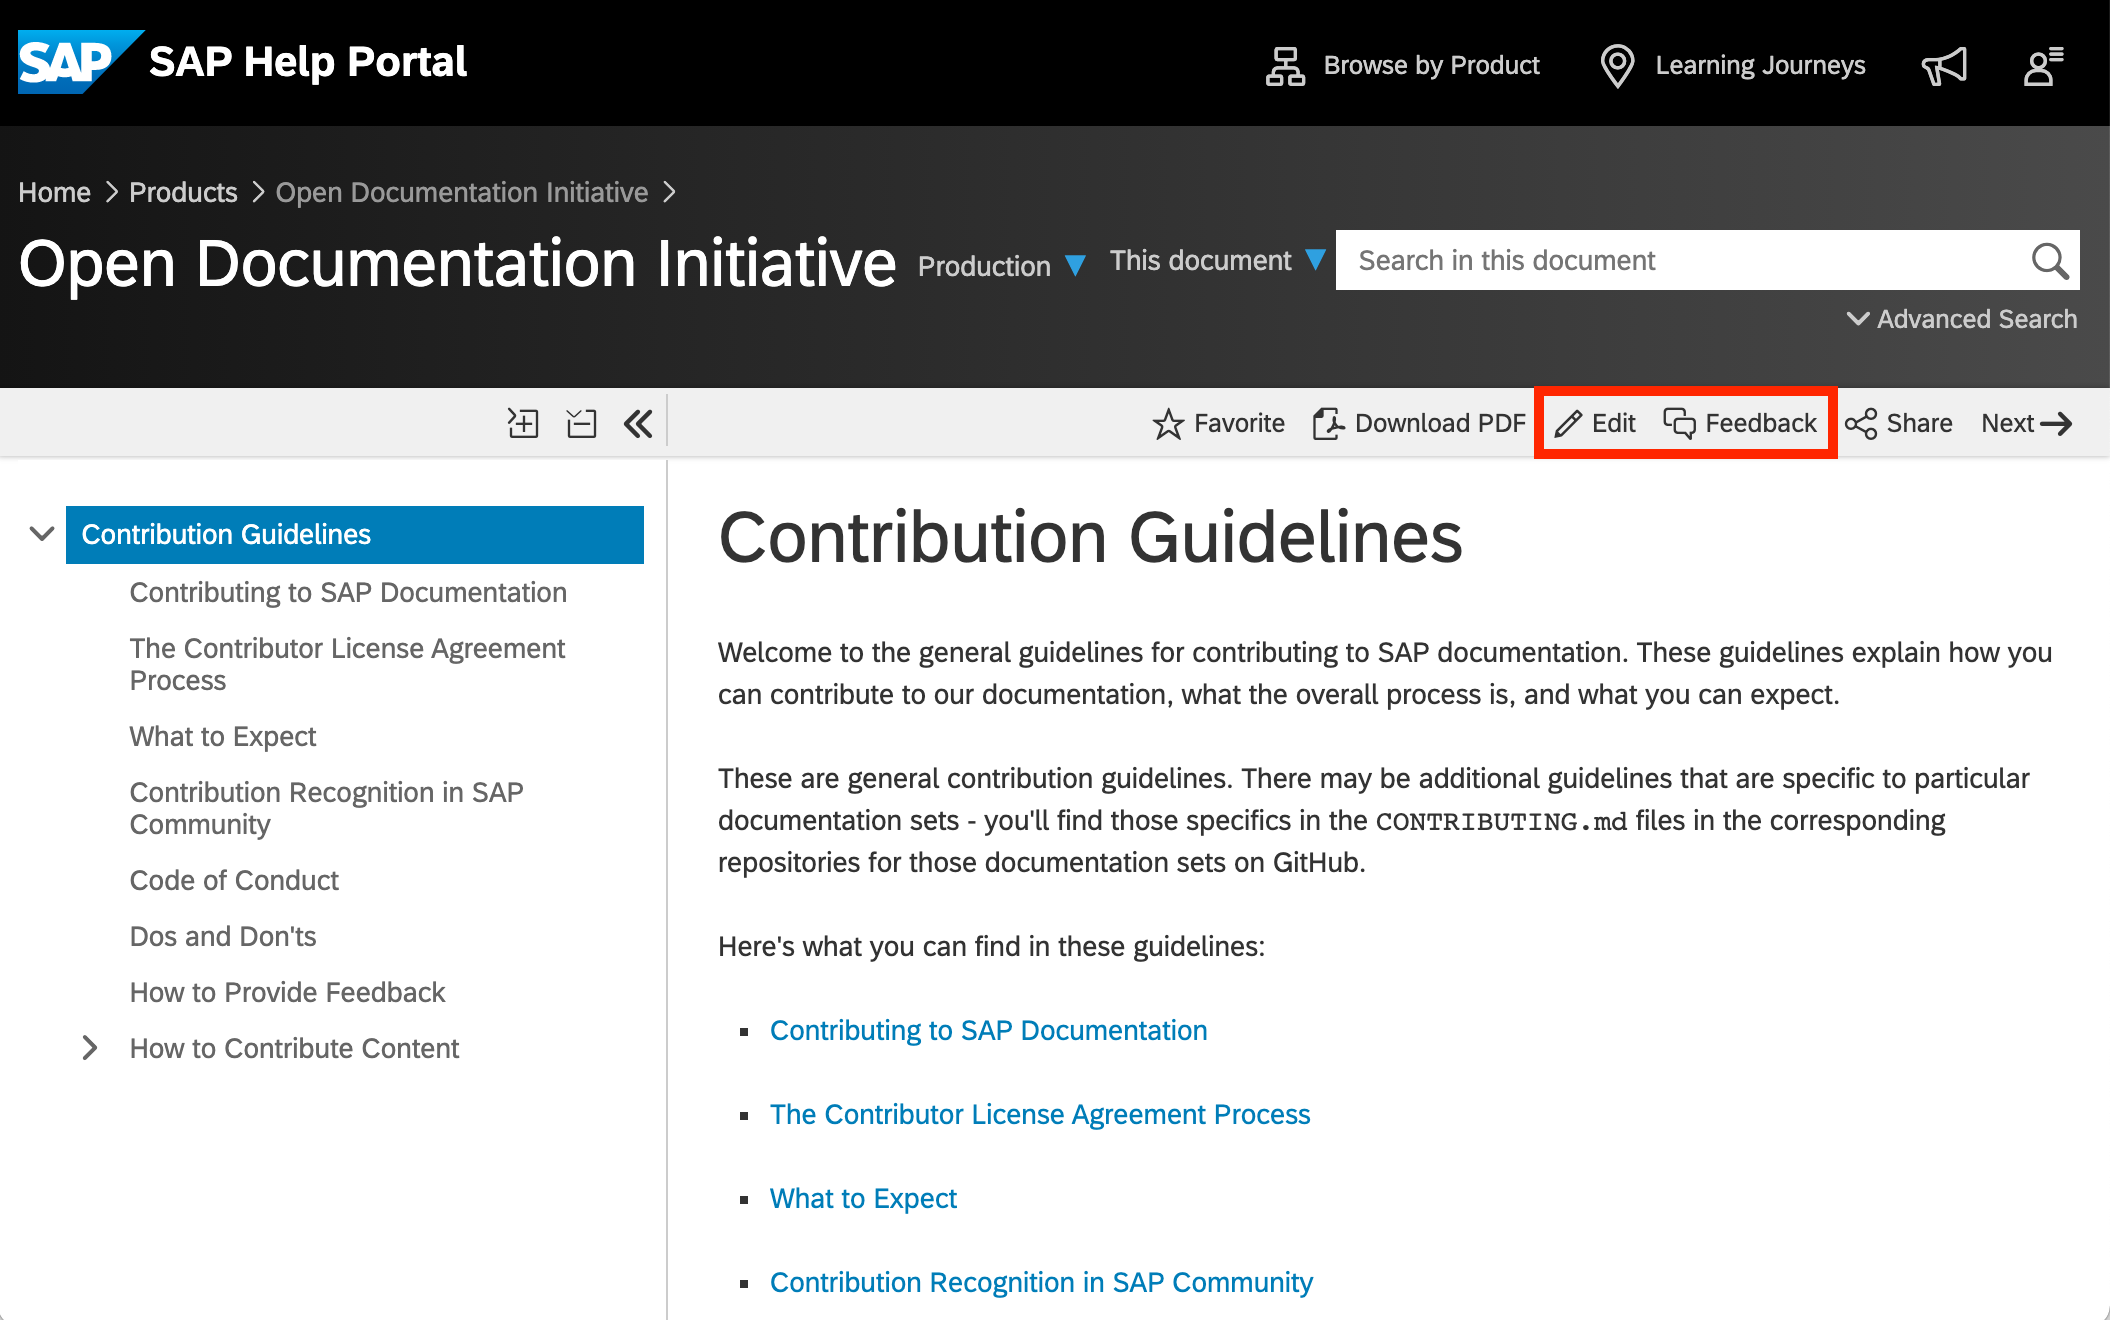 The%20Contribution%20Guidelines%20documentation%20on%20the%20SAP%20Help%20Portal%2C%20with%20the%20Edit%20and%20Feedback%20buttons%20highlighted